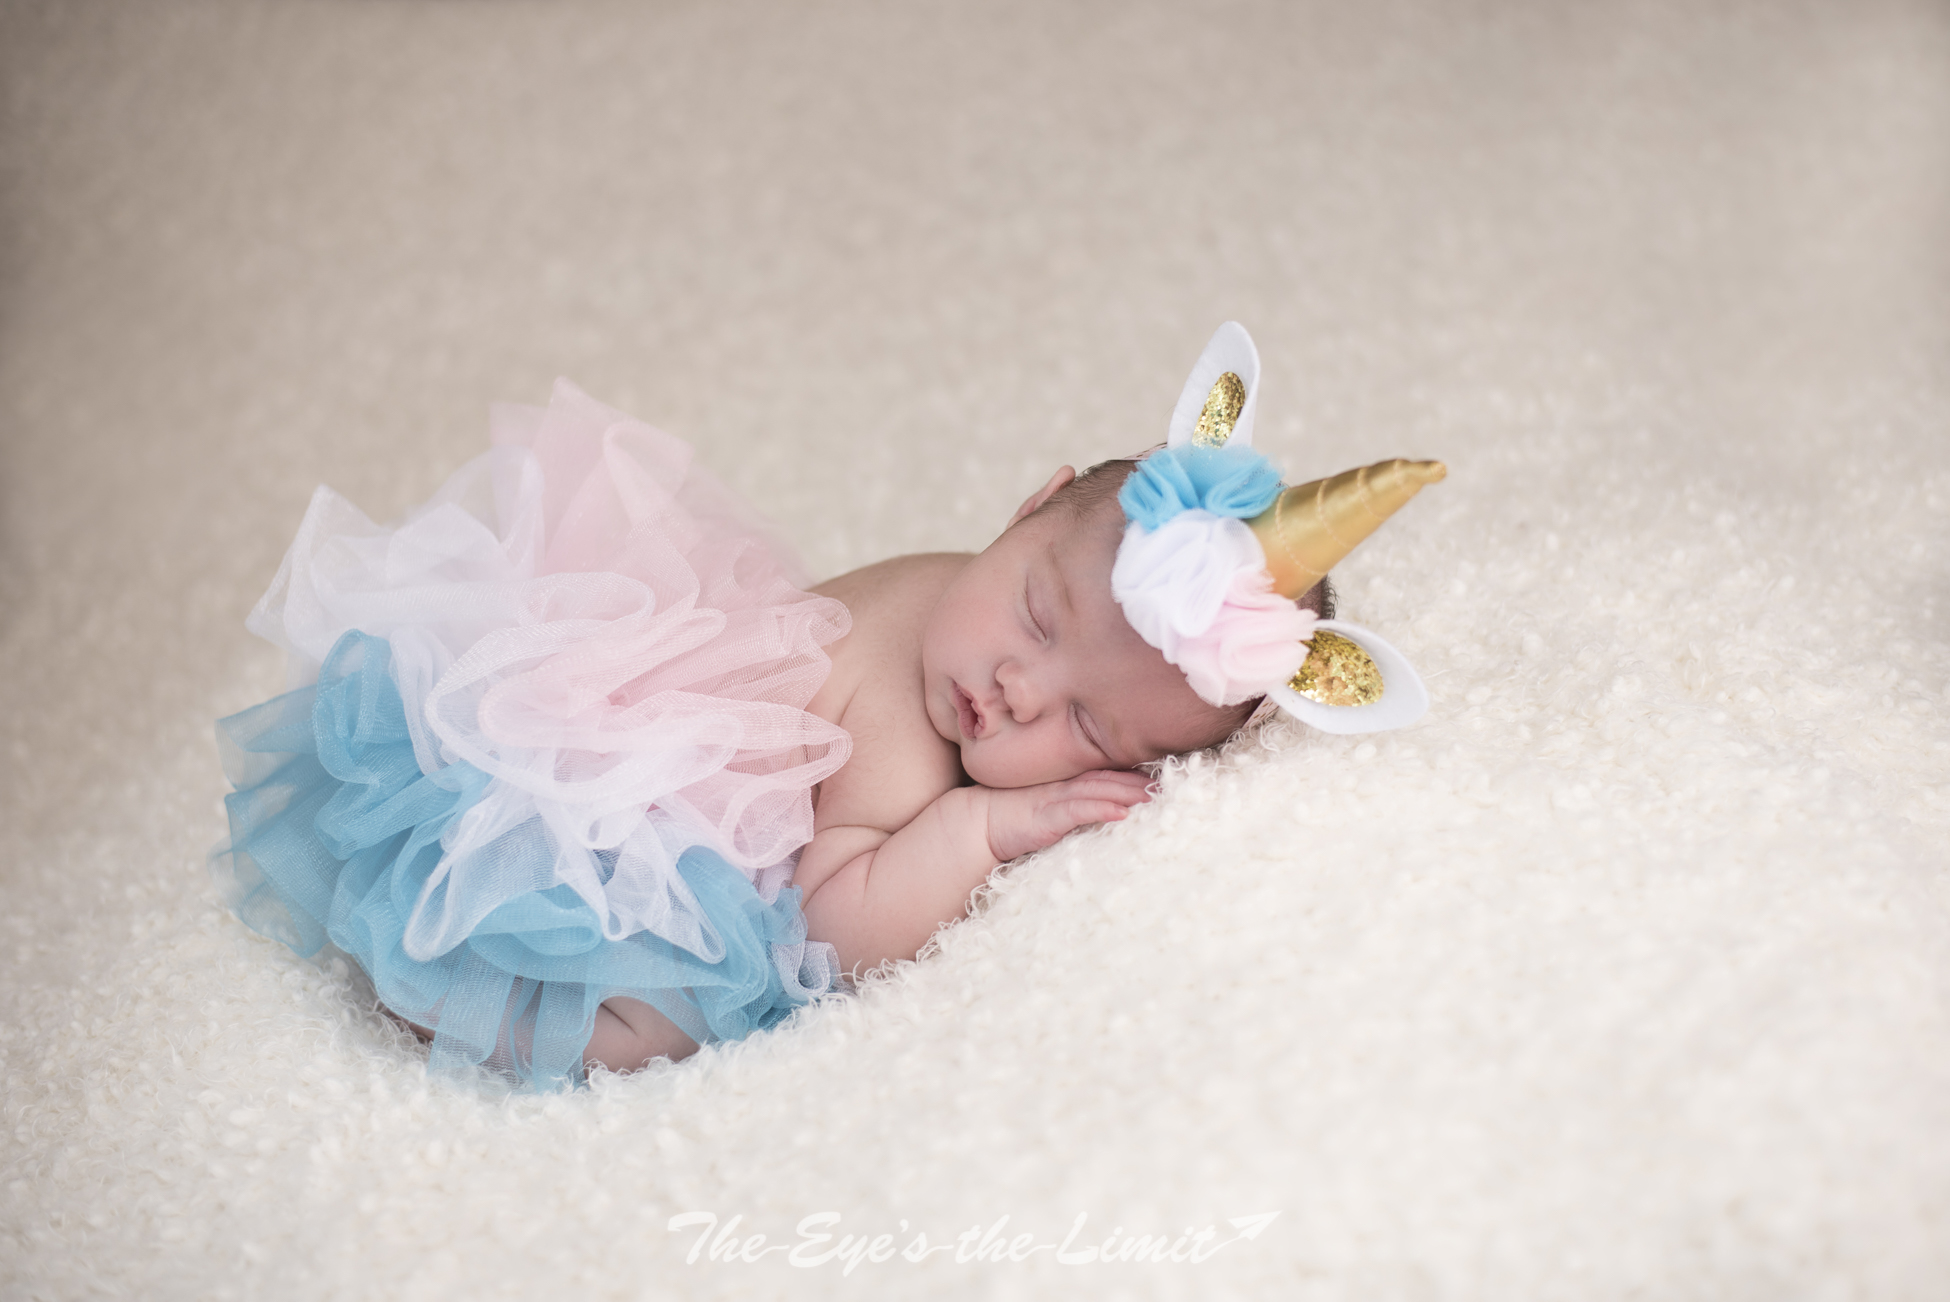 Newborn in unicorn outfit